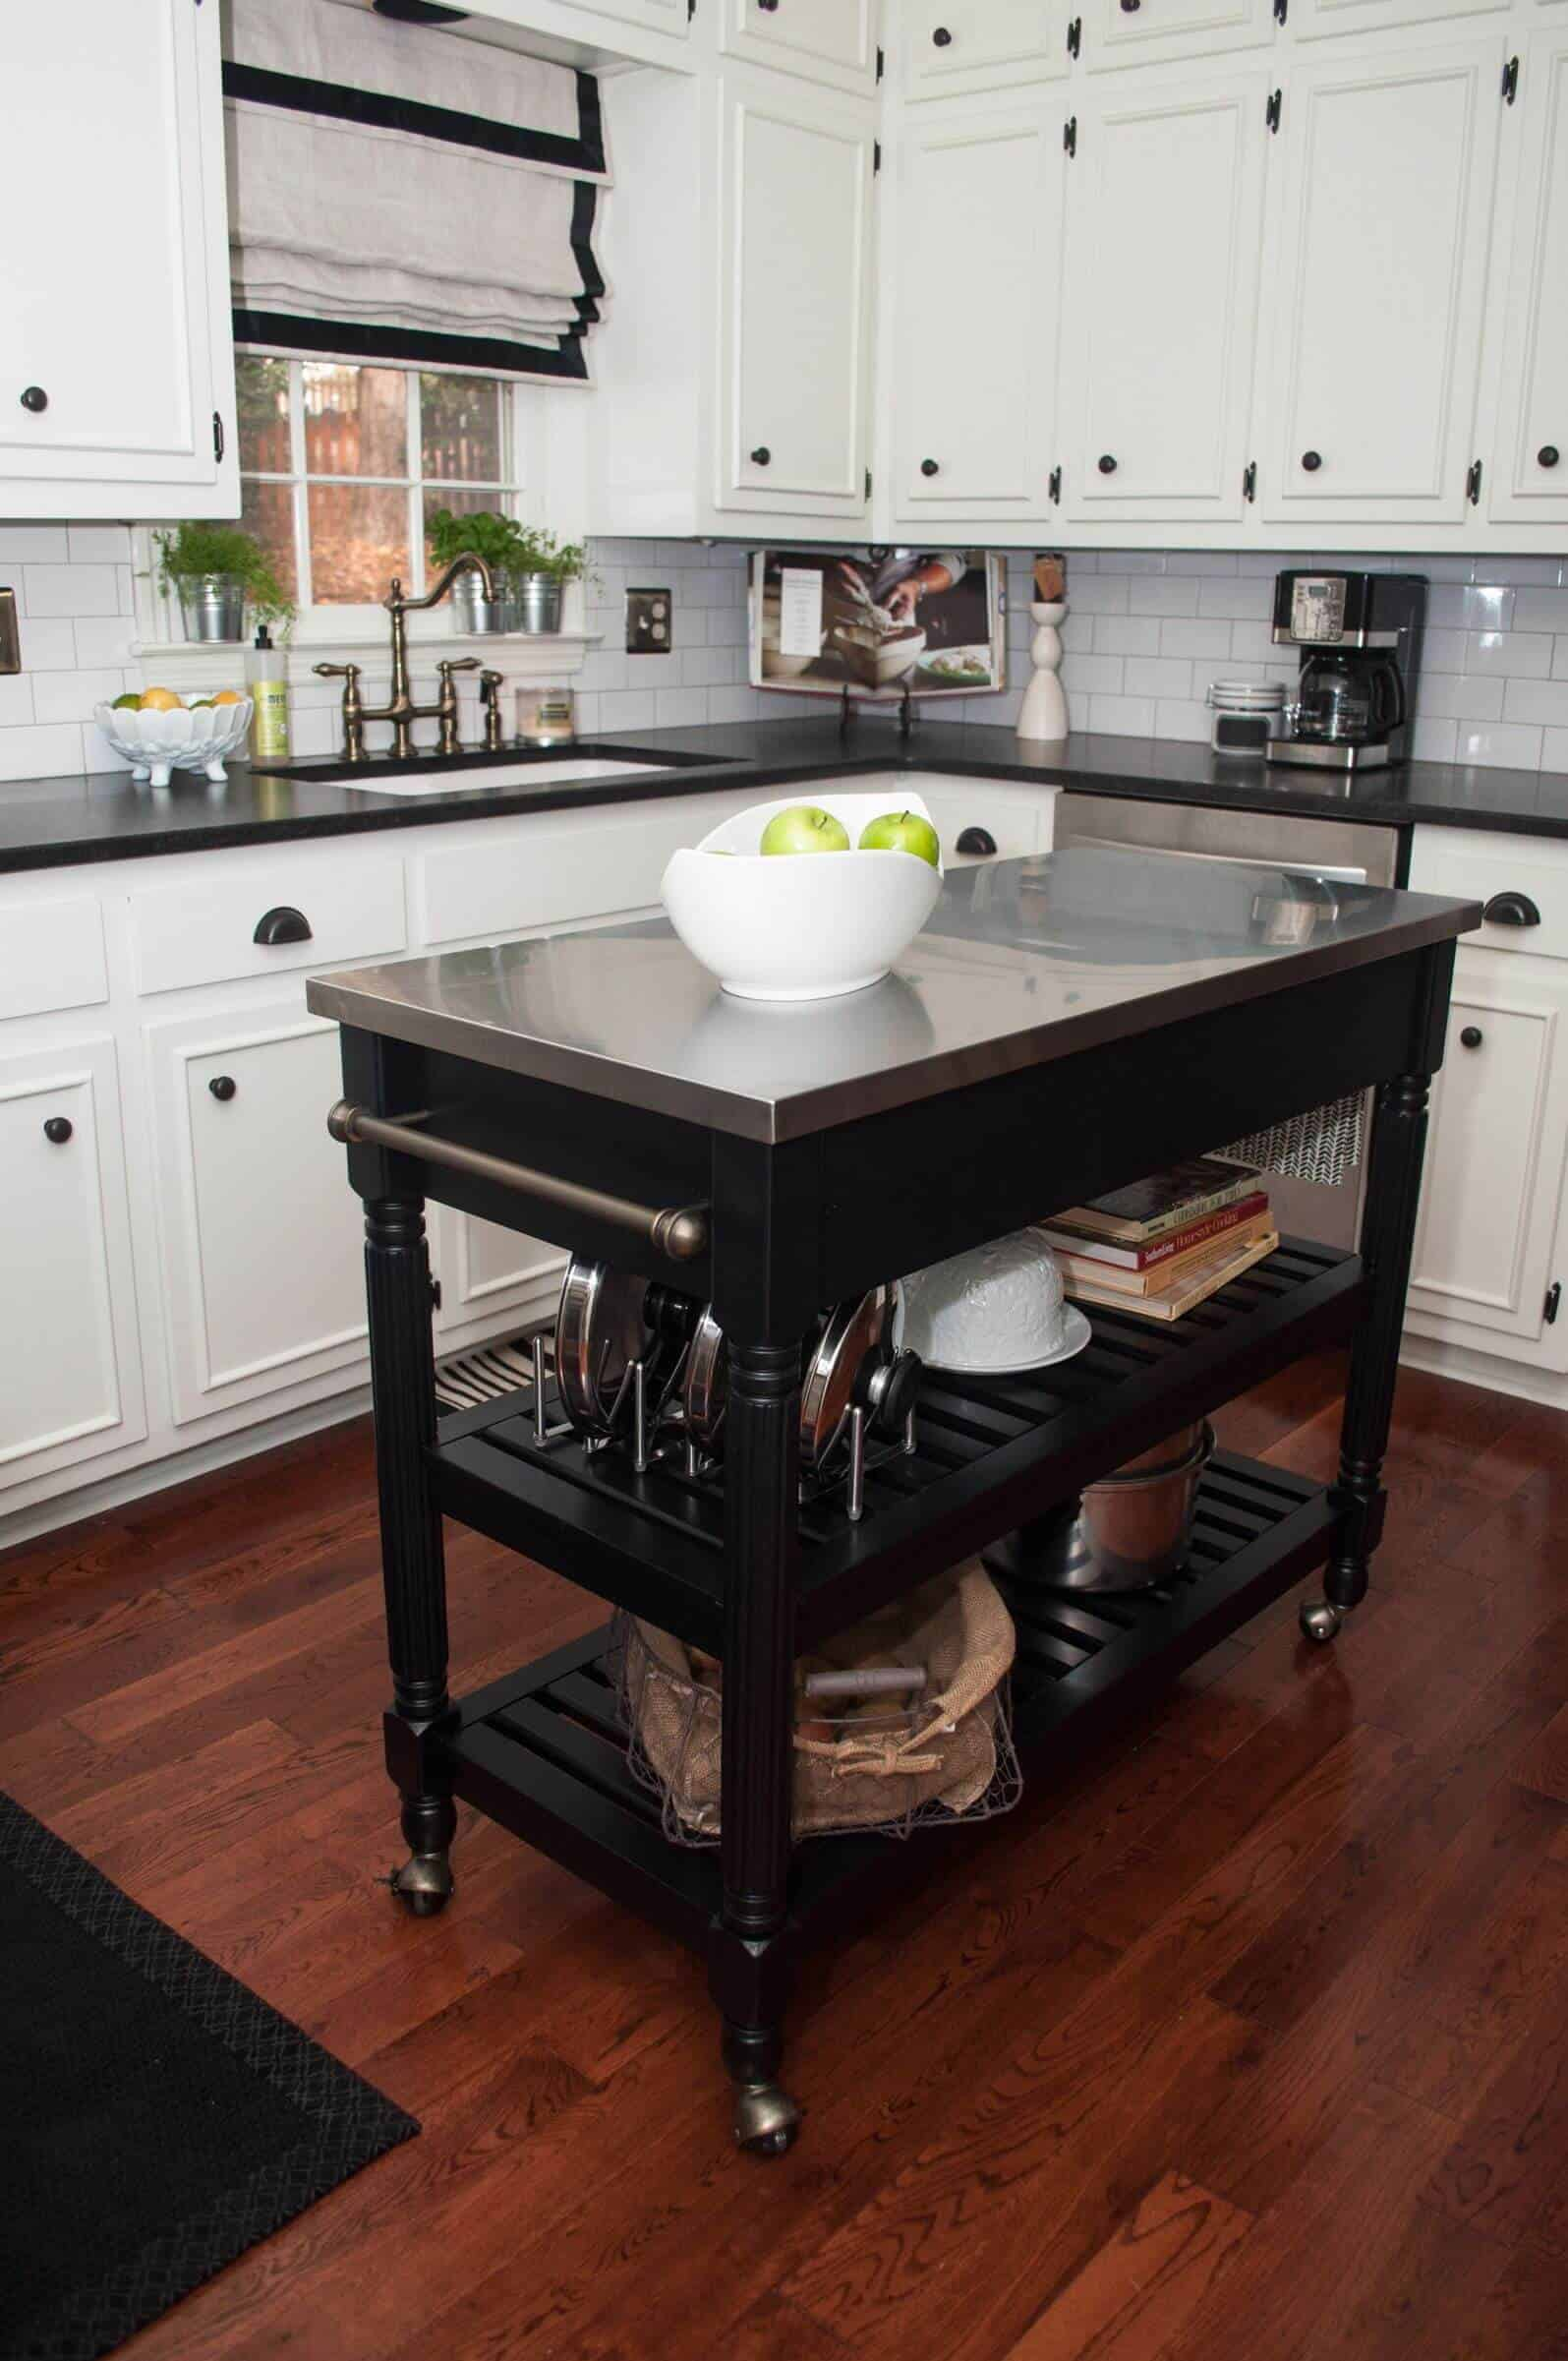 Beautiful Small Kitchen Island Cart On Wheels With Stainless Steel Top.